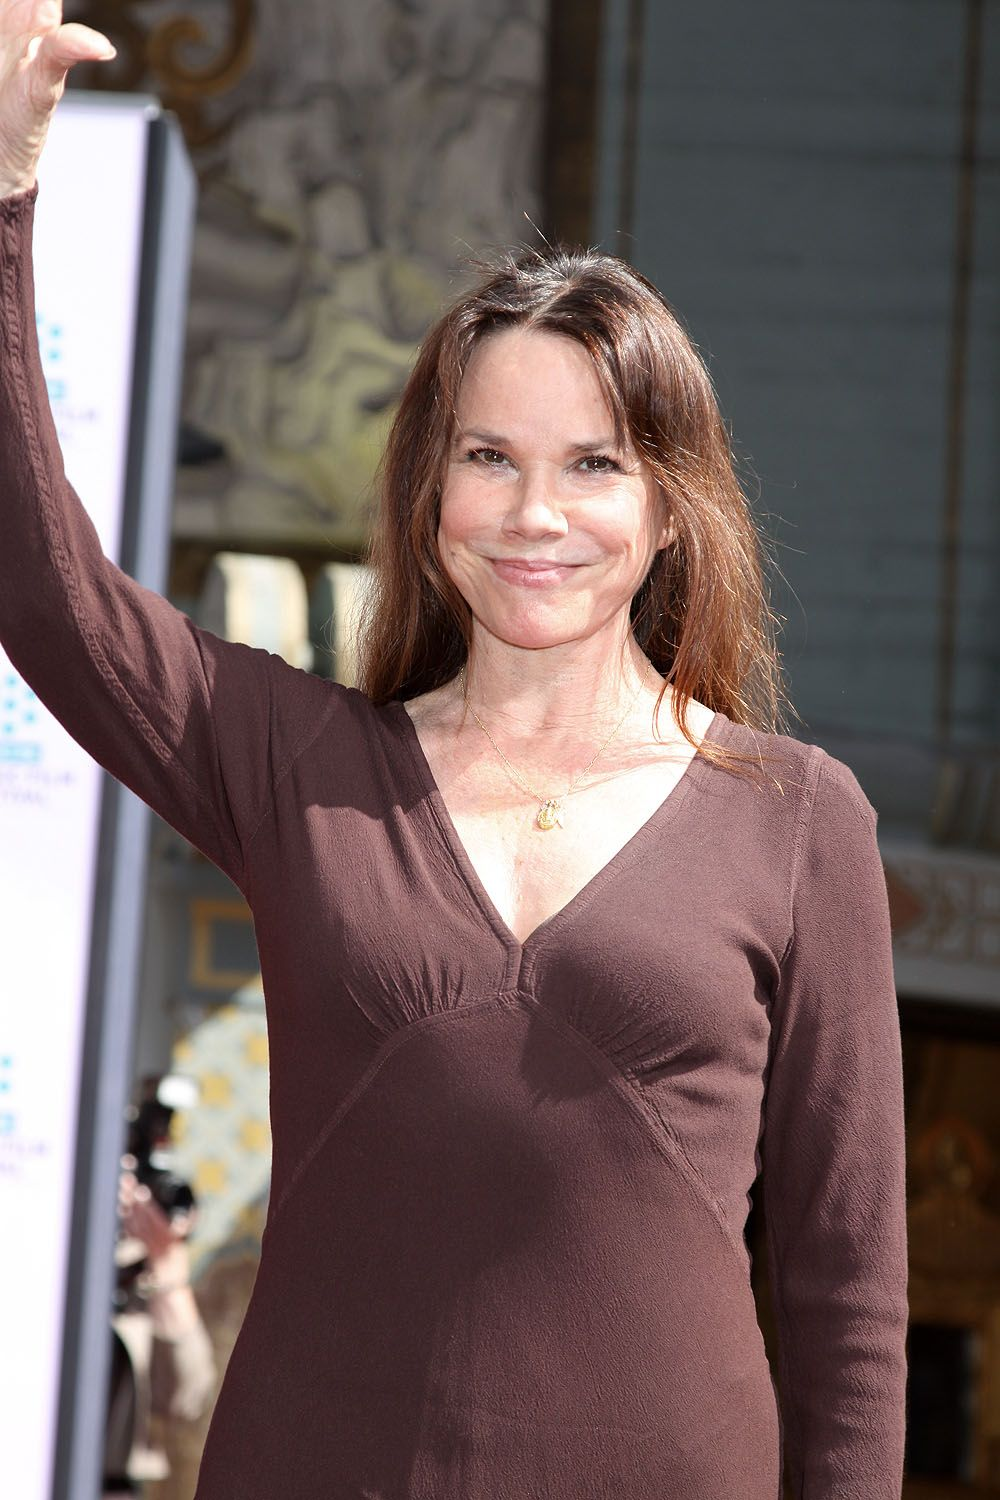 Barbara Hershey nude (19 photos), Tits, Paparazzi, Boobs, panties 2019